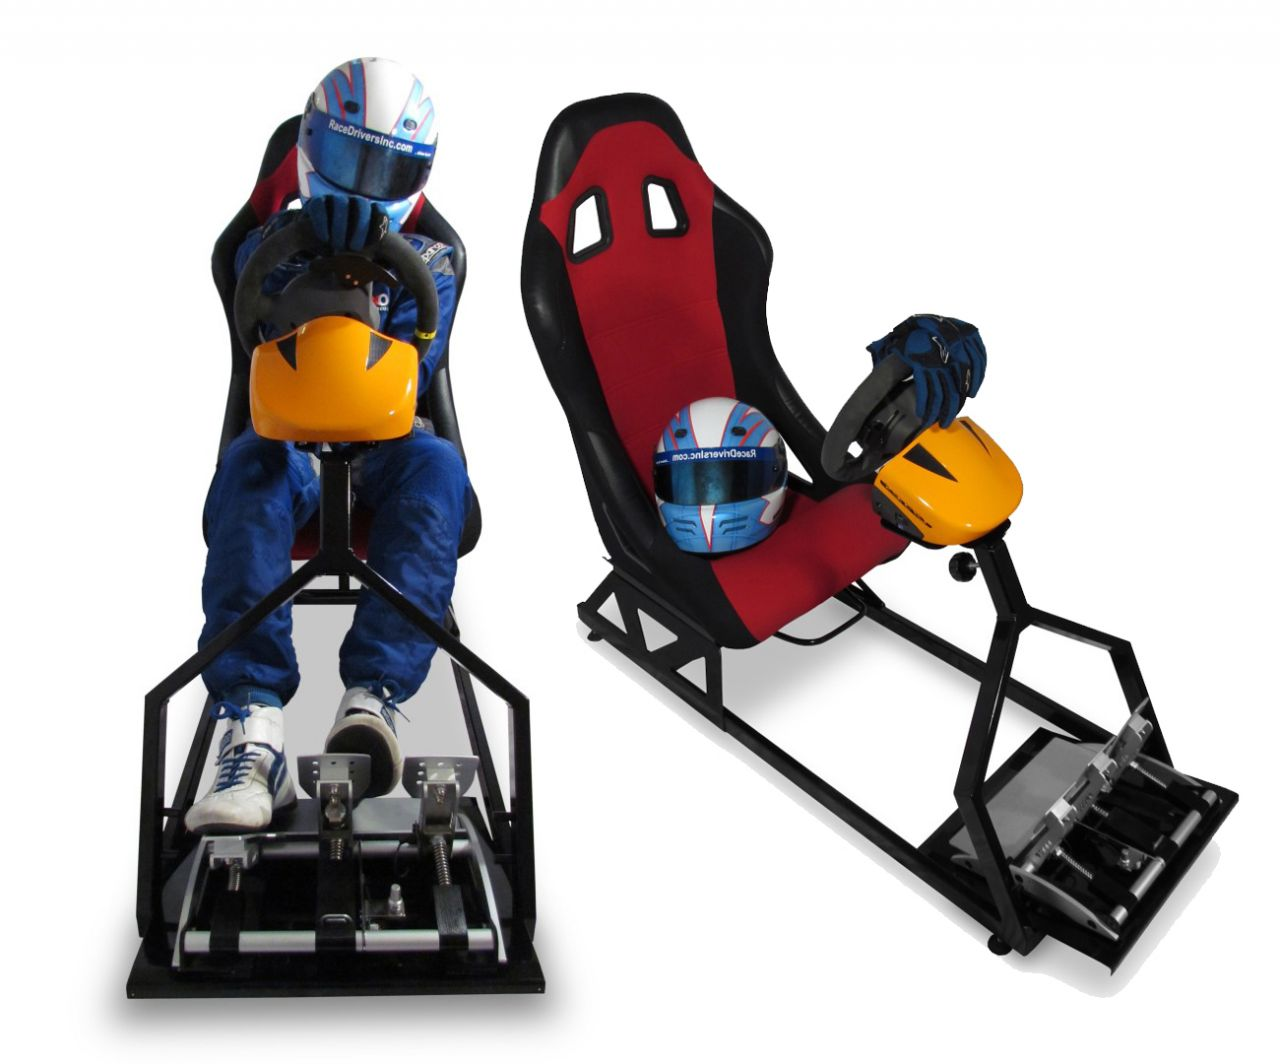 Game racing seats for the ultimate experience - Exo Play to win